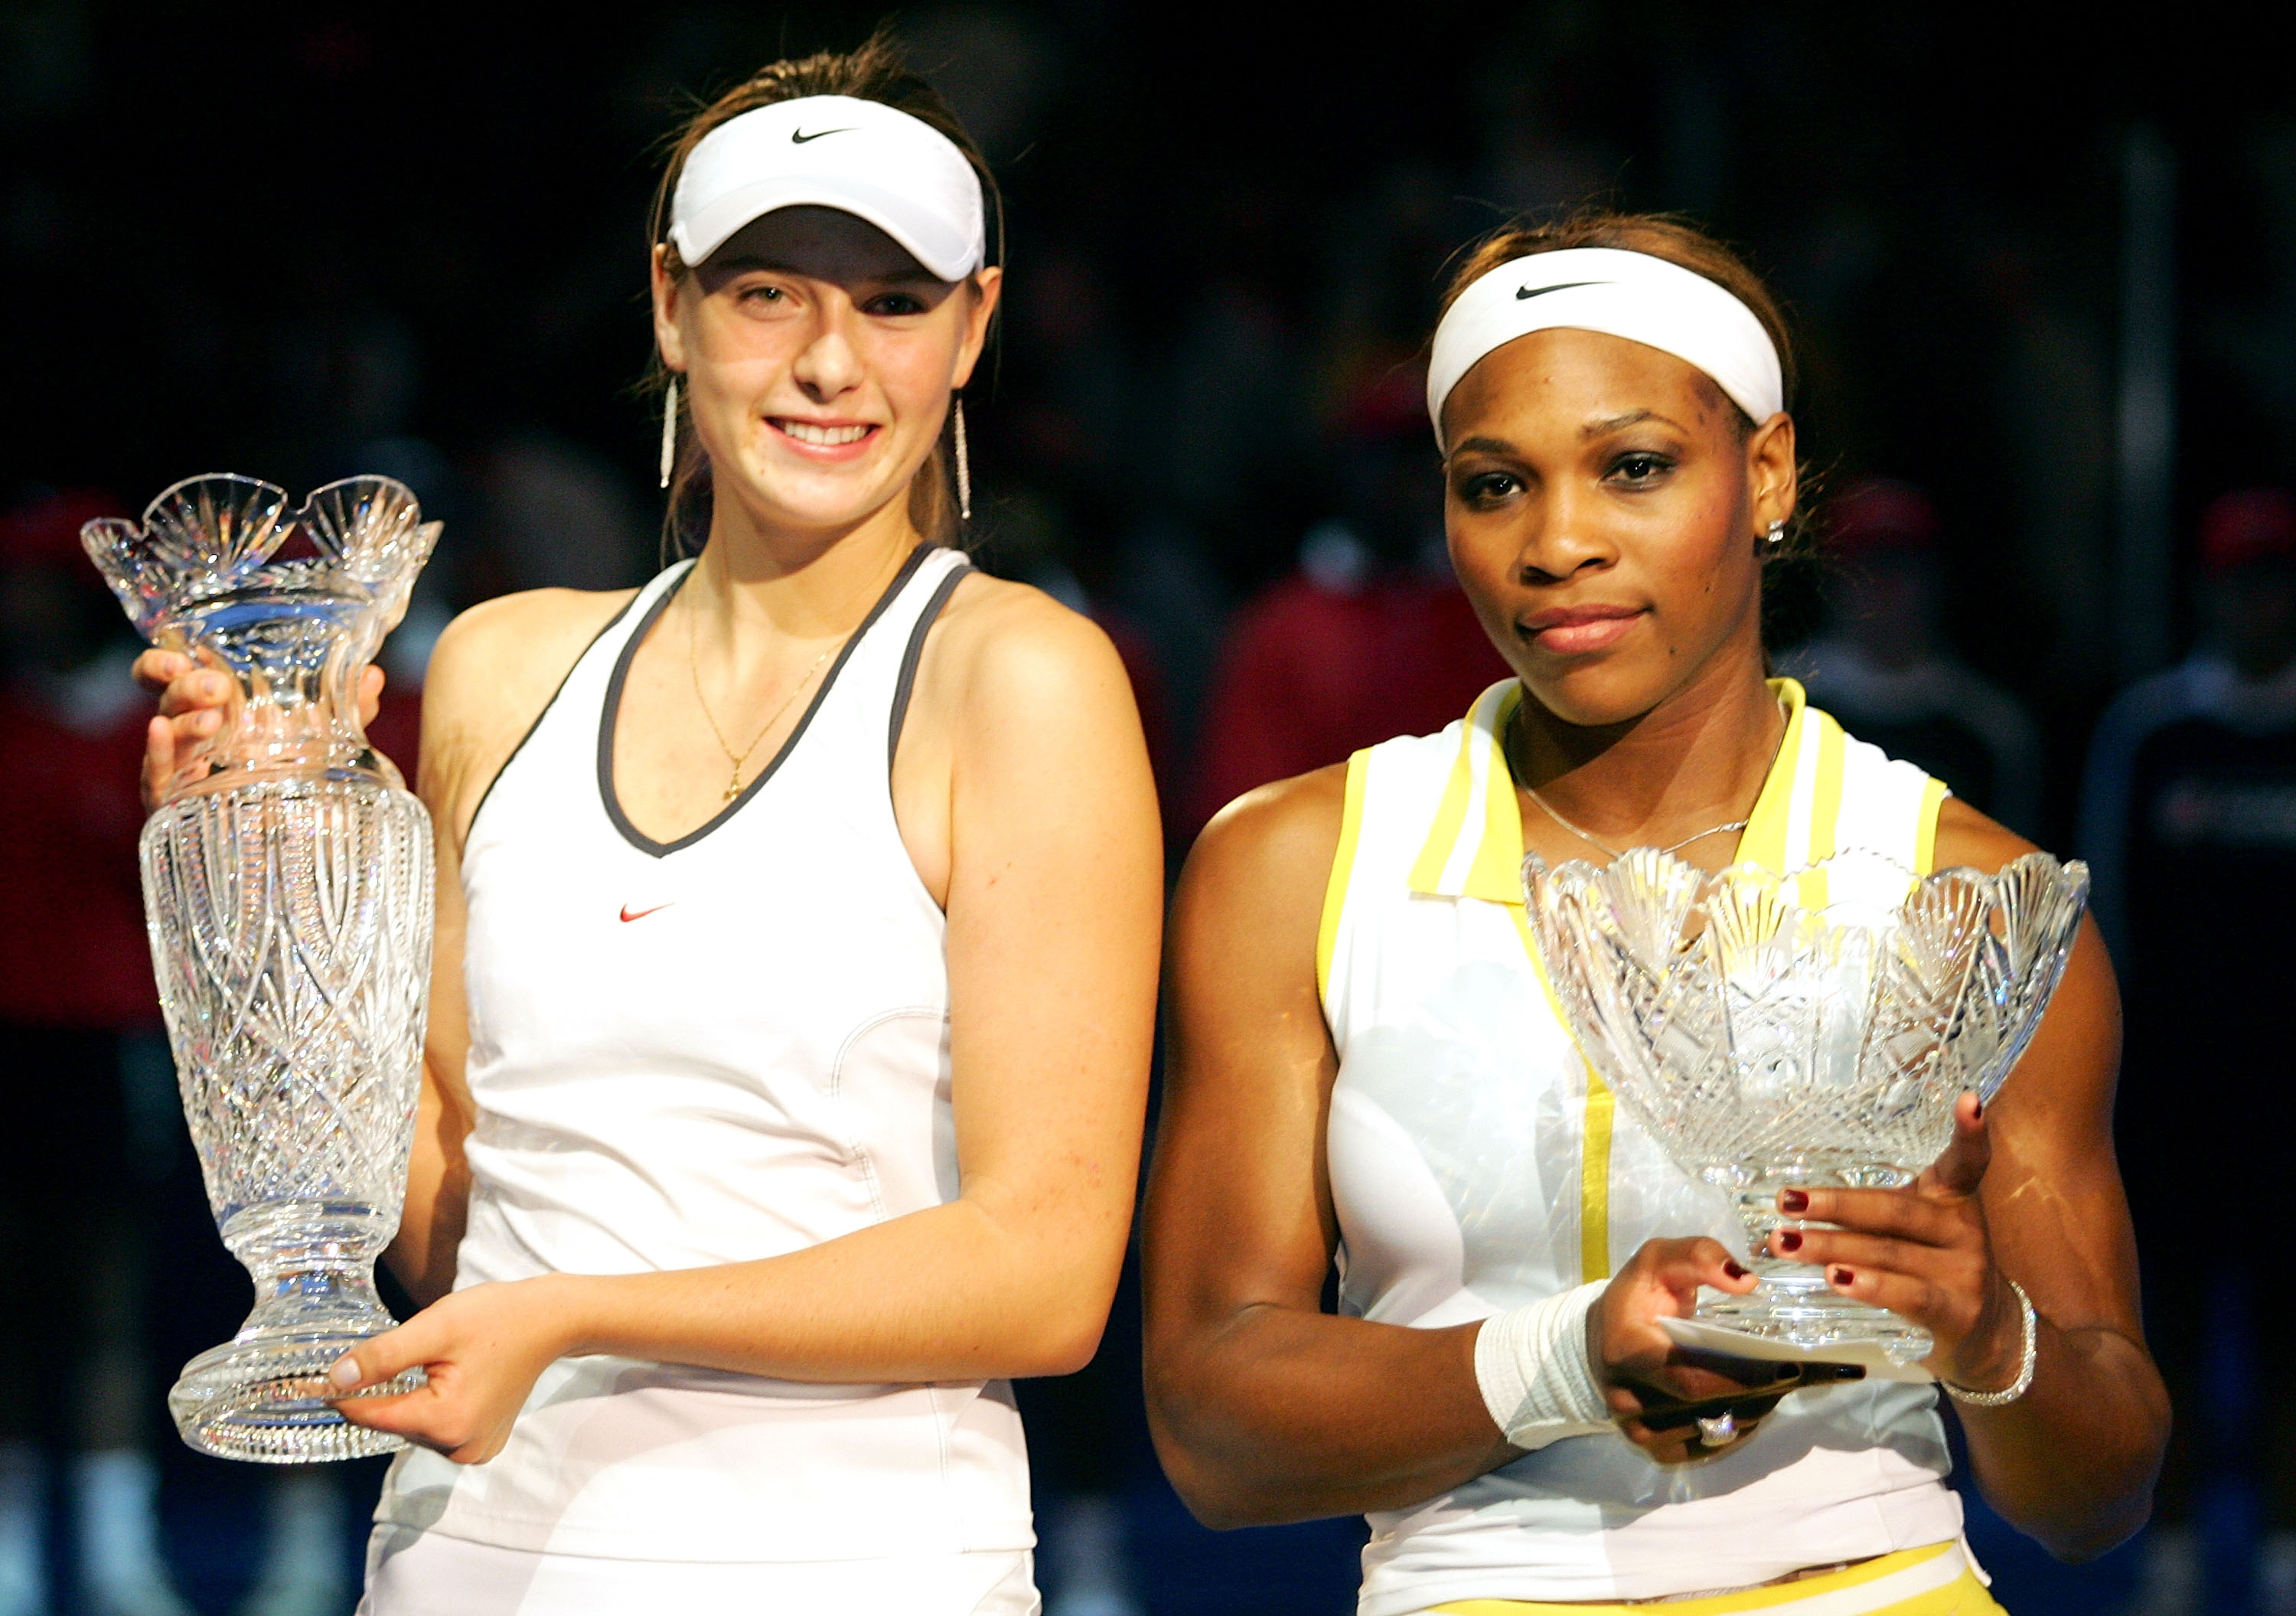 Sharapova went on to win her only WTA Finals title, beating Serena in three sets after trailing 0-4 in the third. She has not beaten Serena since.